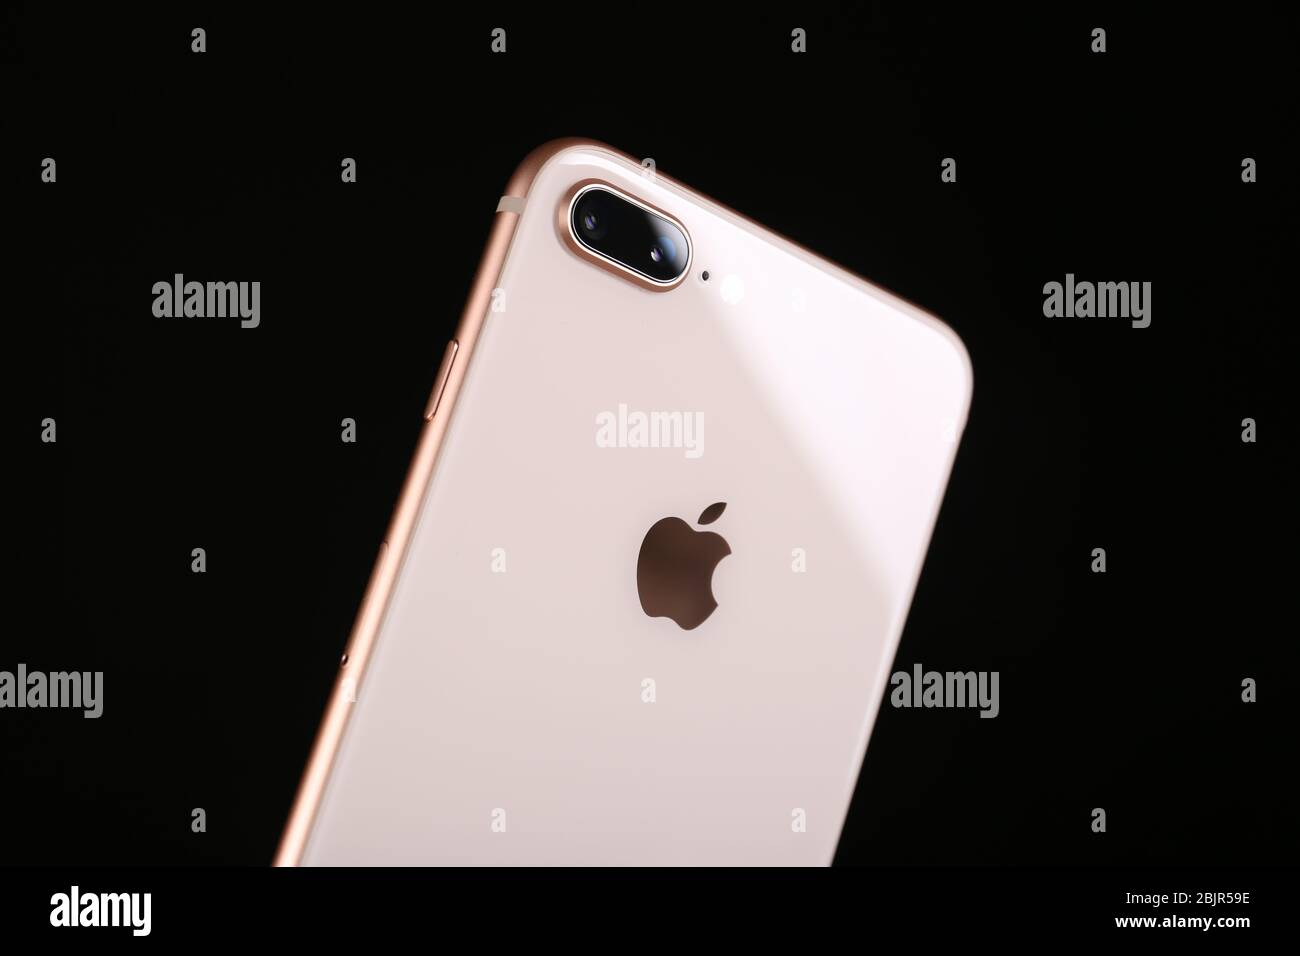 Kiev Ukraine October 23 2017 Back Panel Of Iphone 8 Plus Gold On Black Background Stock Photo Alamy